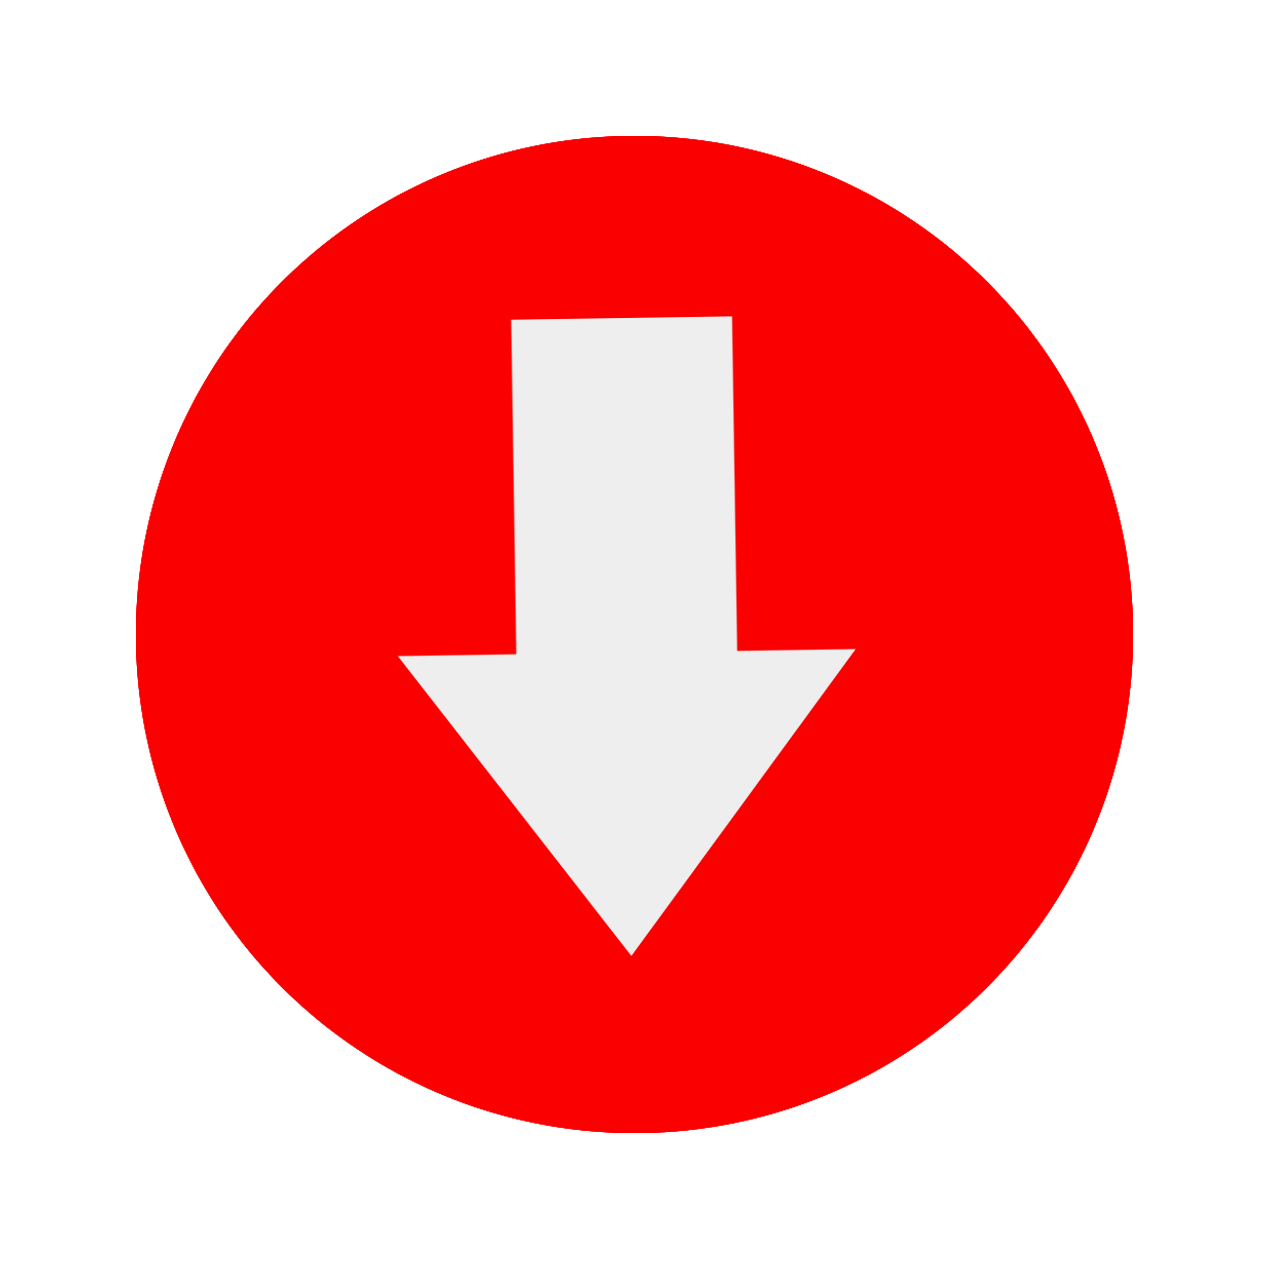 Down Button